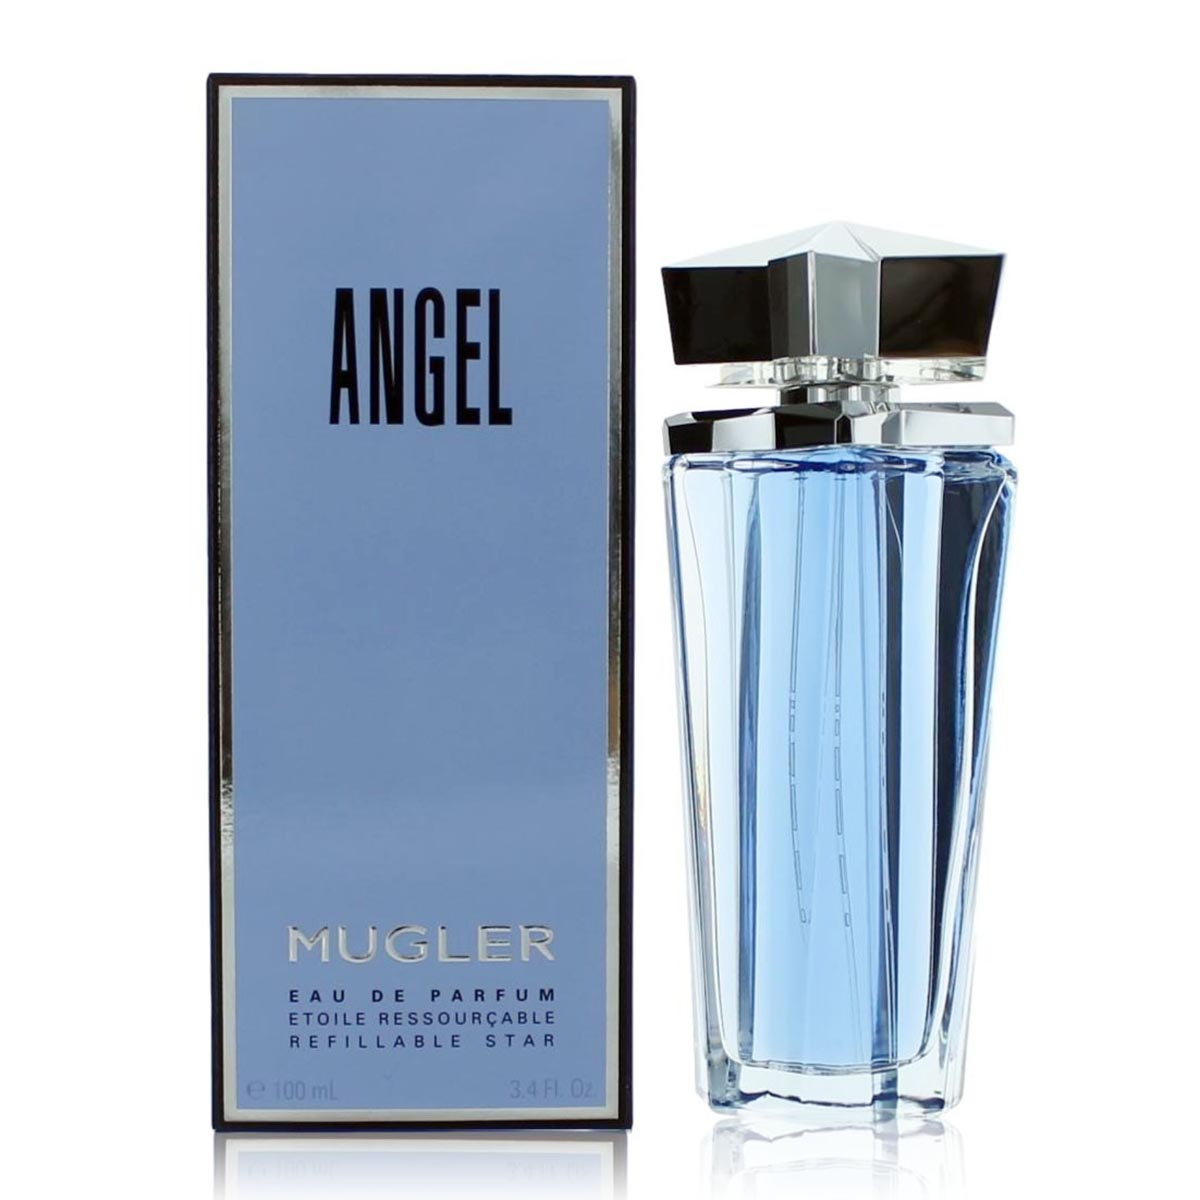 Thierry mugler angel eau de toilette 50ml vaporizador refillable